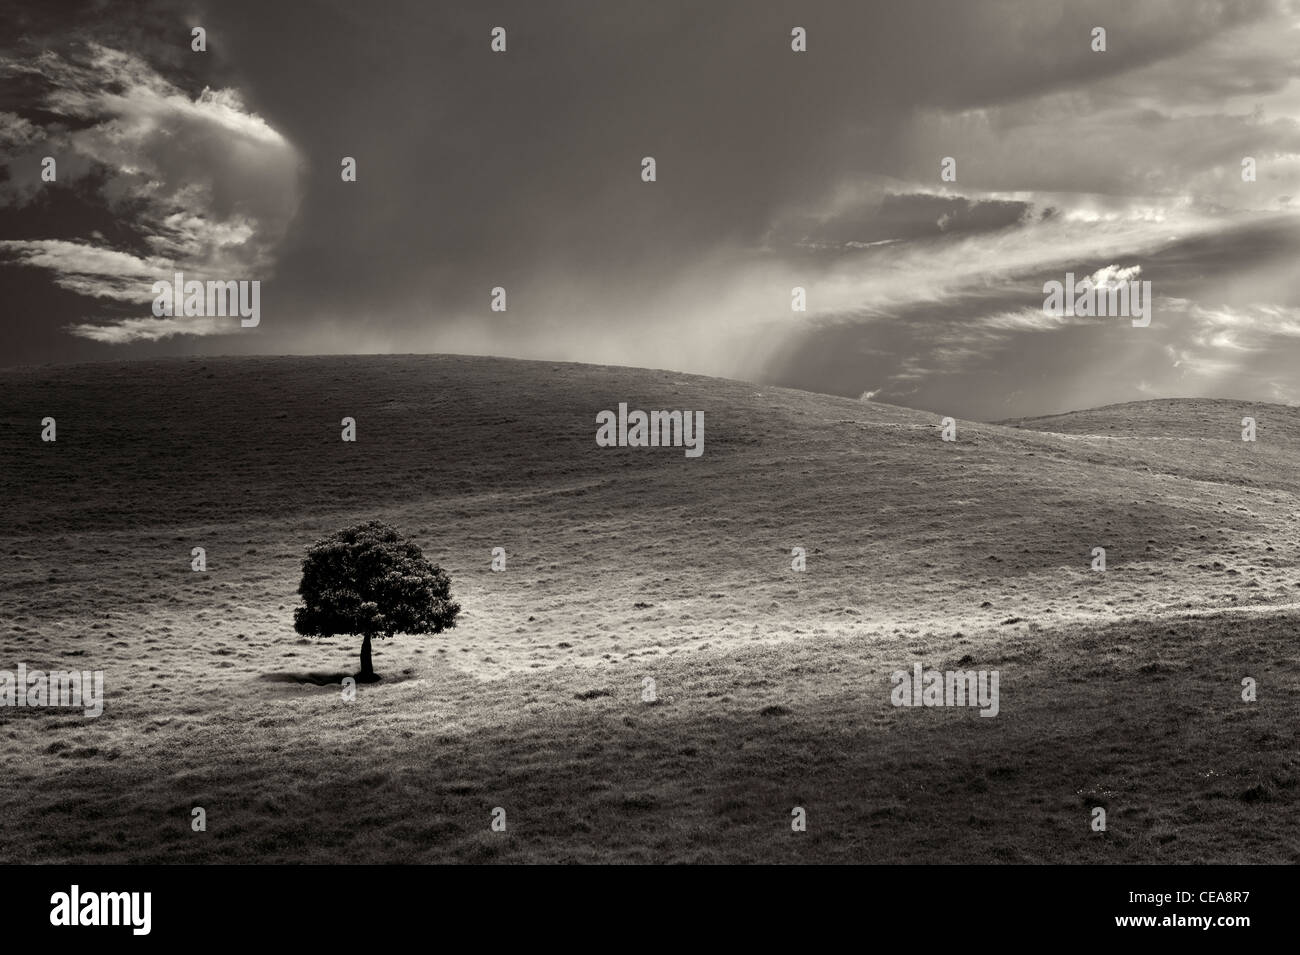 Lone tree in pasture. Hawaii, The Big Island. - Stock Image